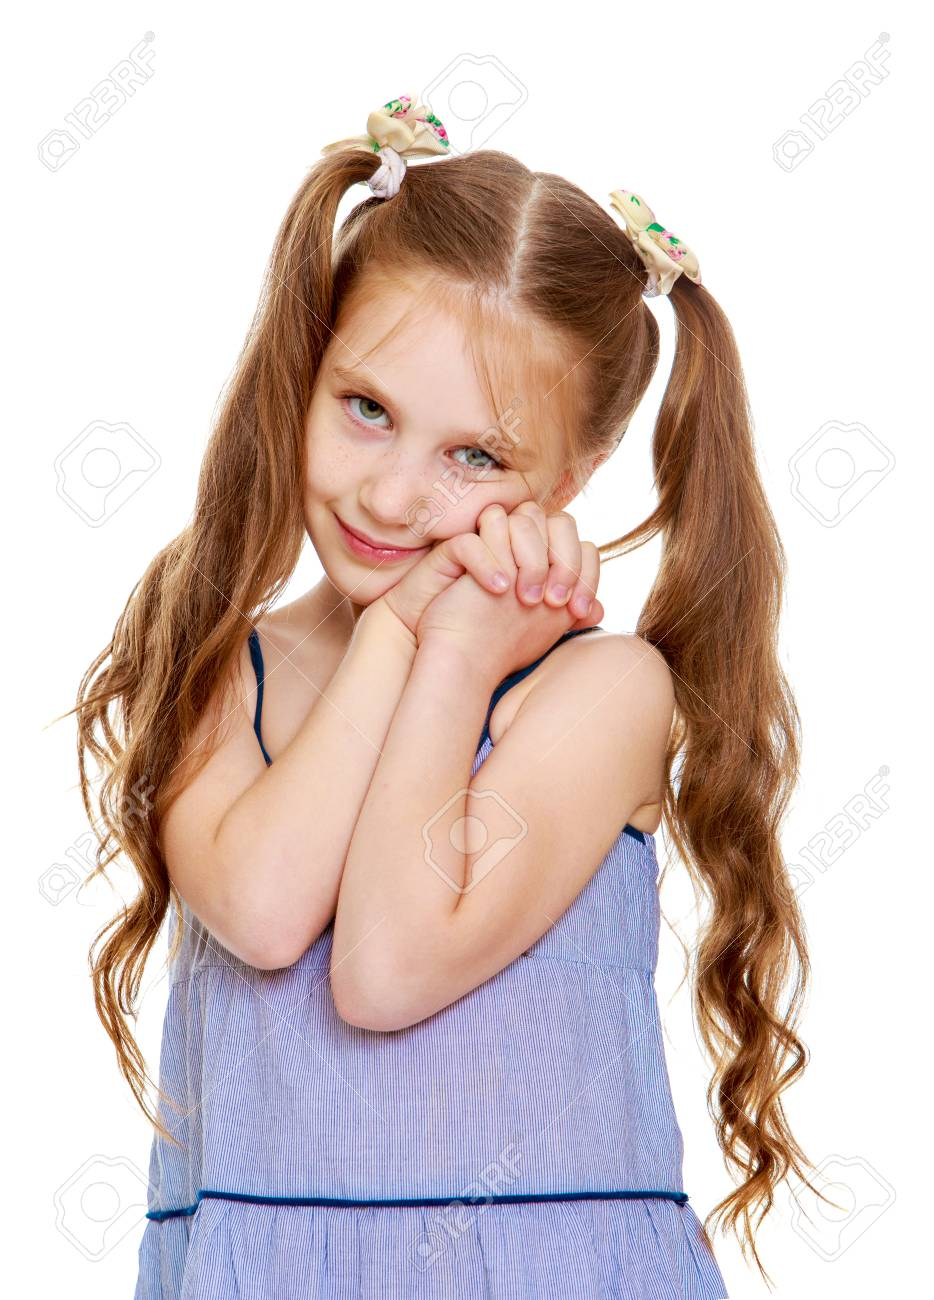 Marvelous Beautiful Little Girl With Long Ponytails On The Head Close Up Schematic Wiring Diagrams Amerangerunnerswayorg